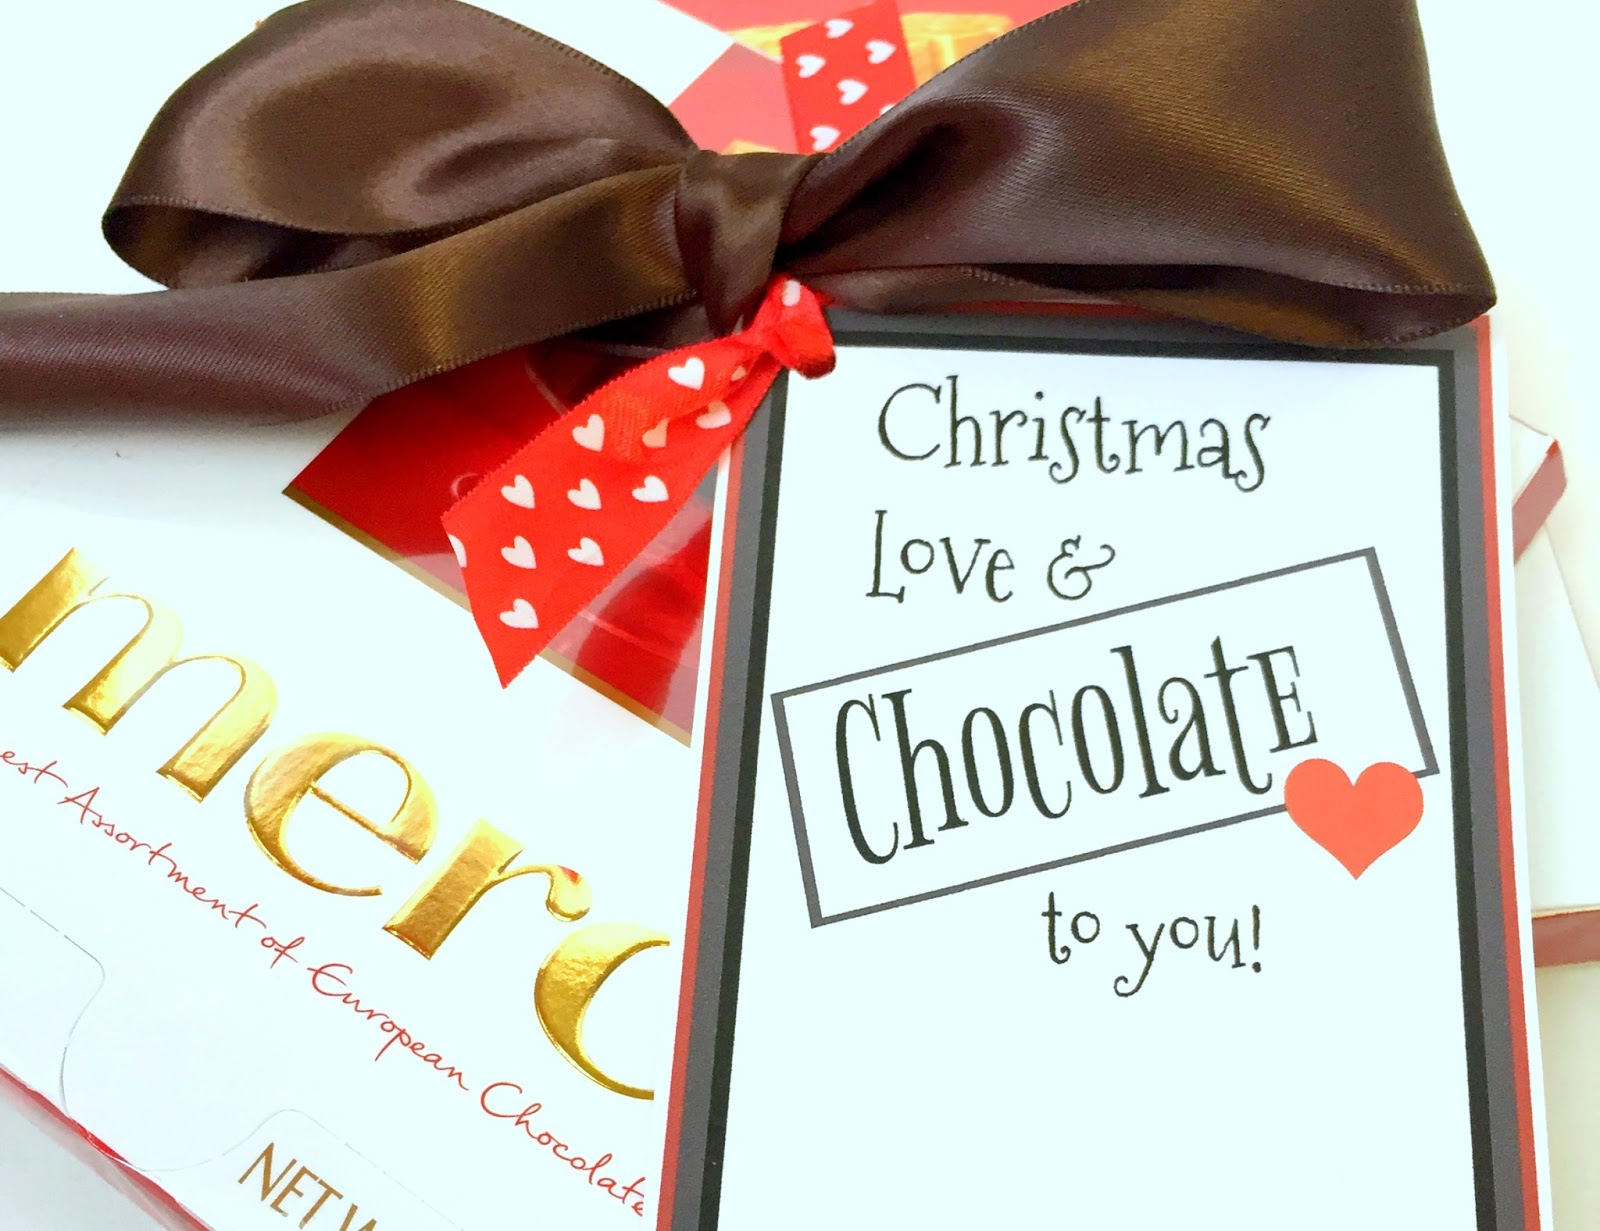 michelle paige blogs: Chocolate Lovers Gift Guide